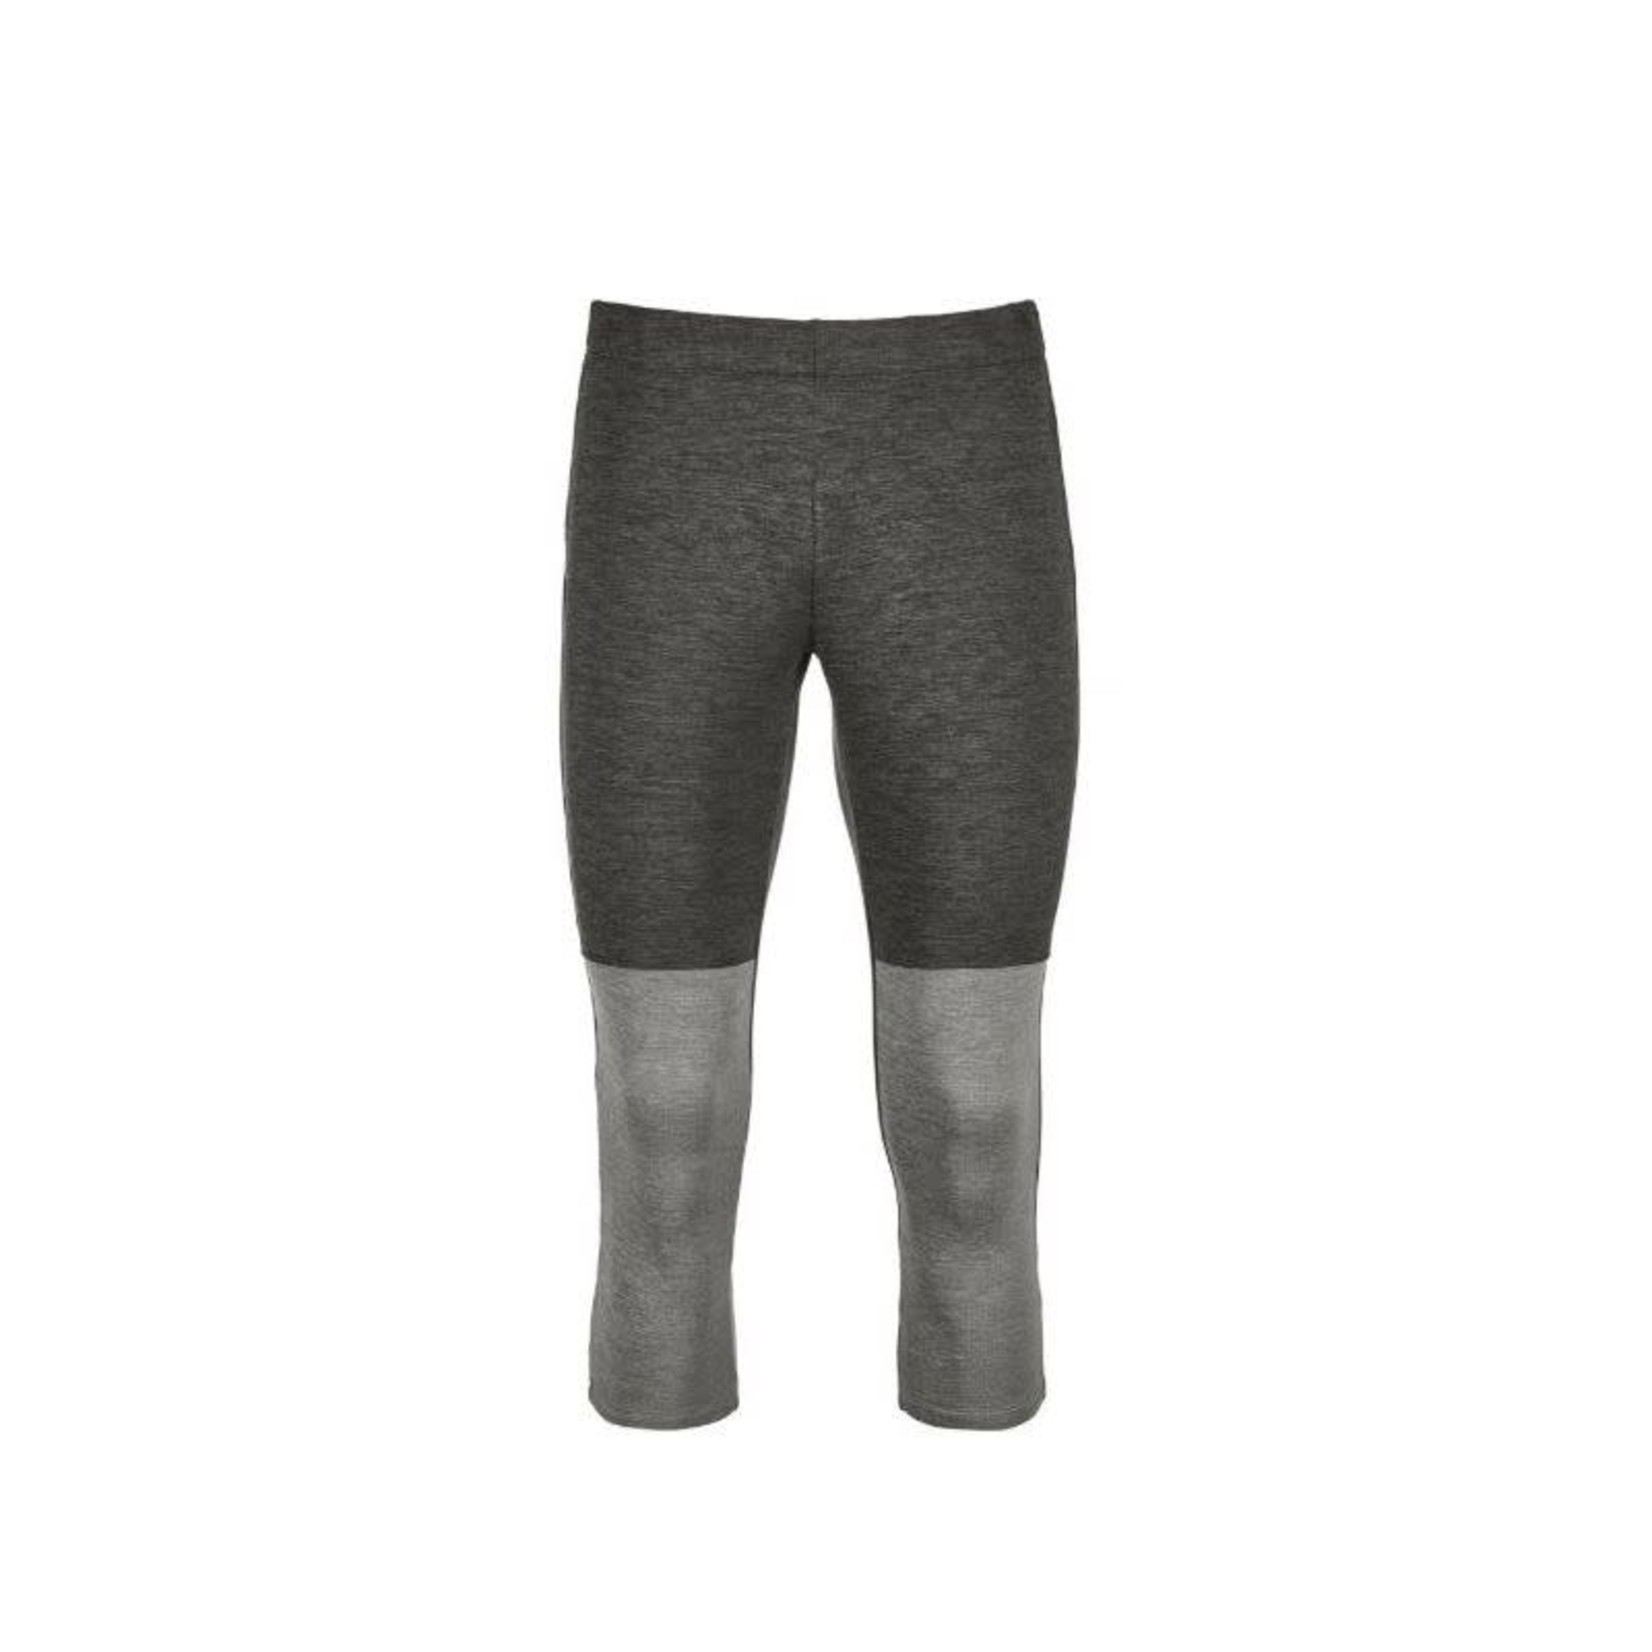 Ortovox Pantalon court Ortovox Fleece Light - Homme